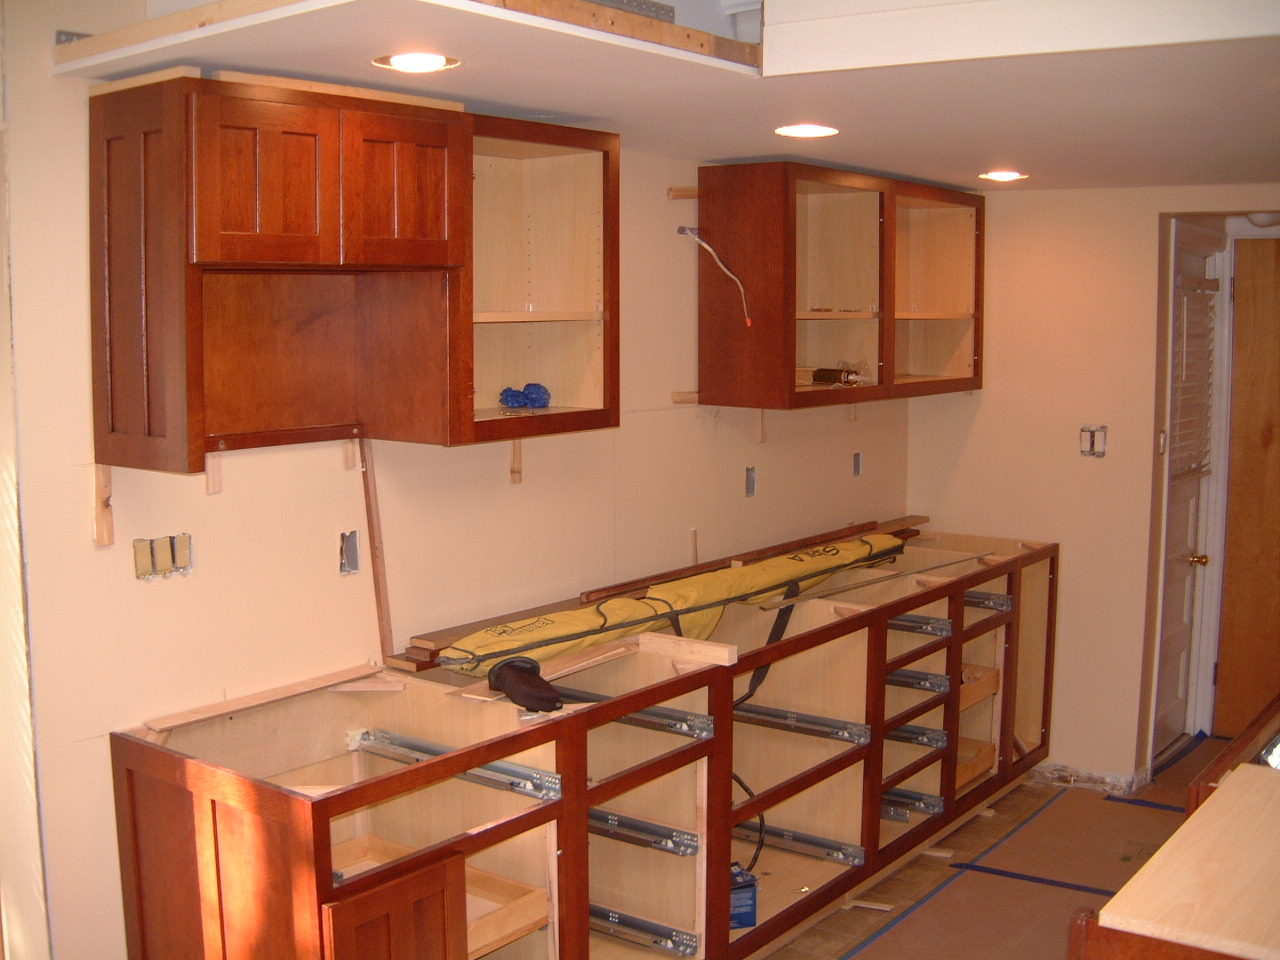 springfield kitchen cabinet install install kitchen cabinets Springfield Kitchen Remodel